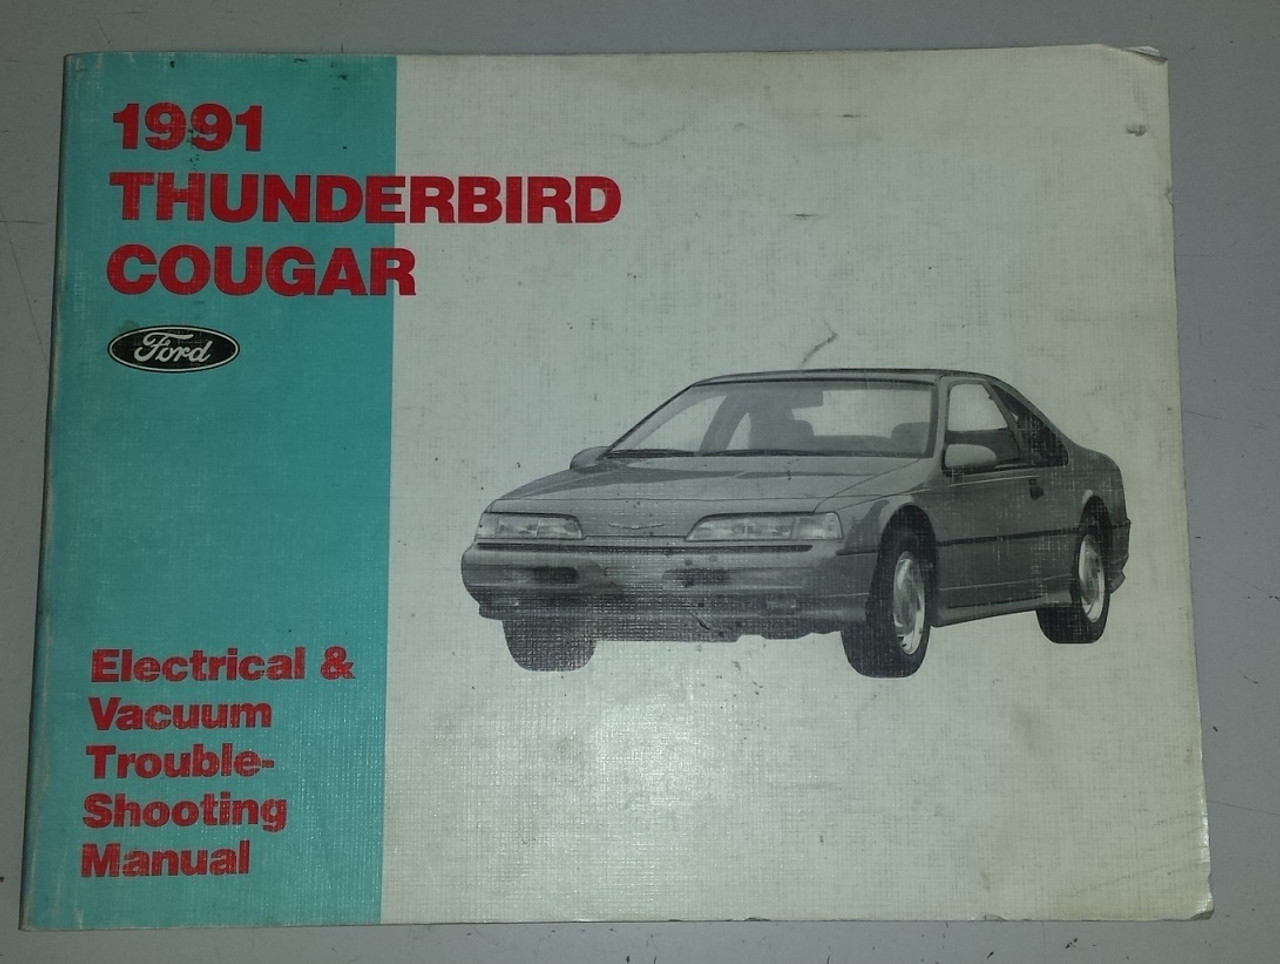 1991 Thunderbird Cougar Electrical & Vacuum Manual - FPS-12116-91 - WWW.